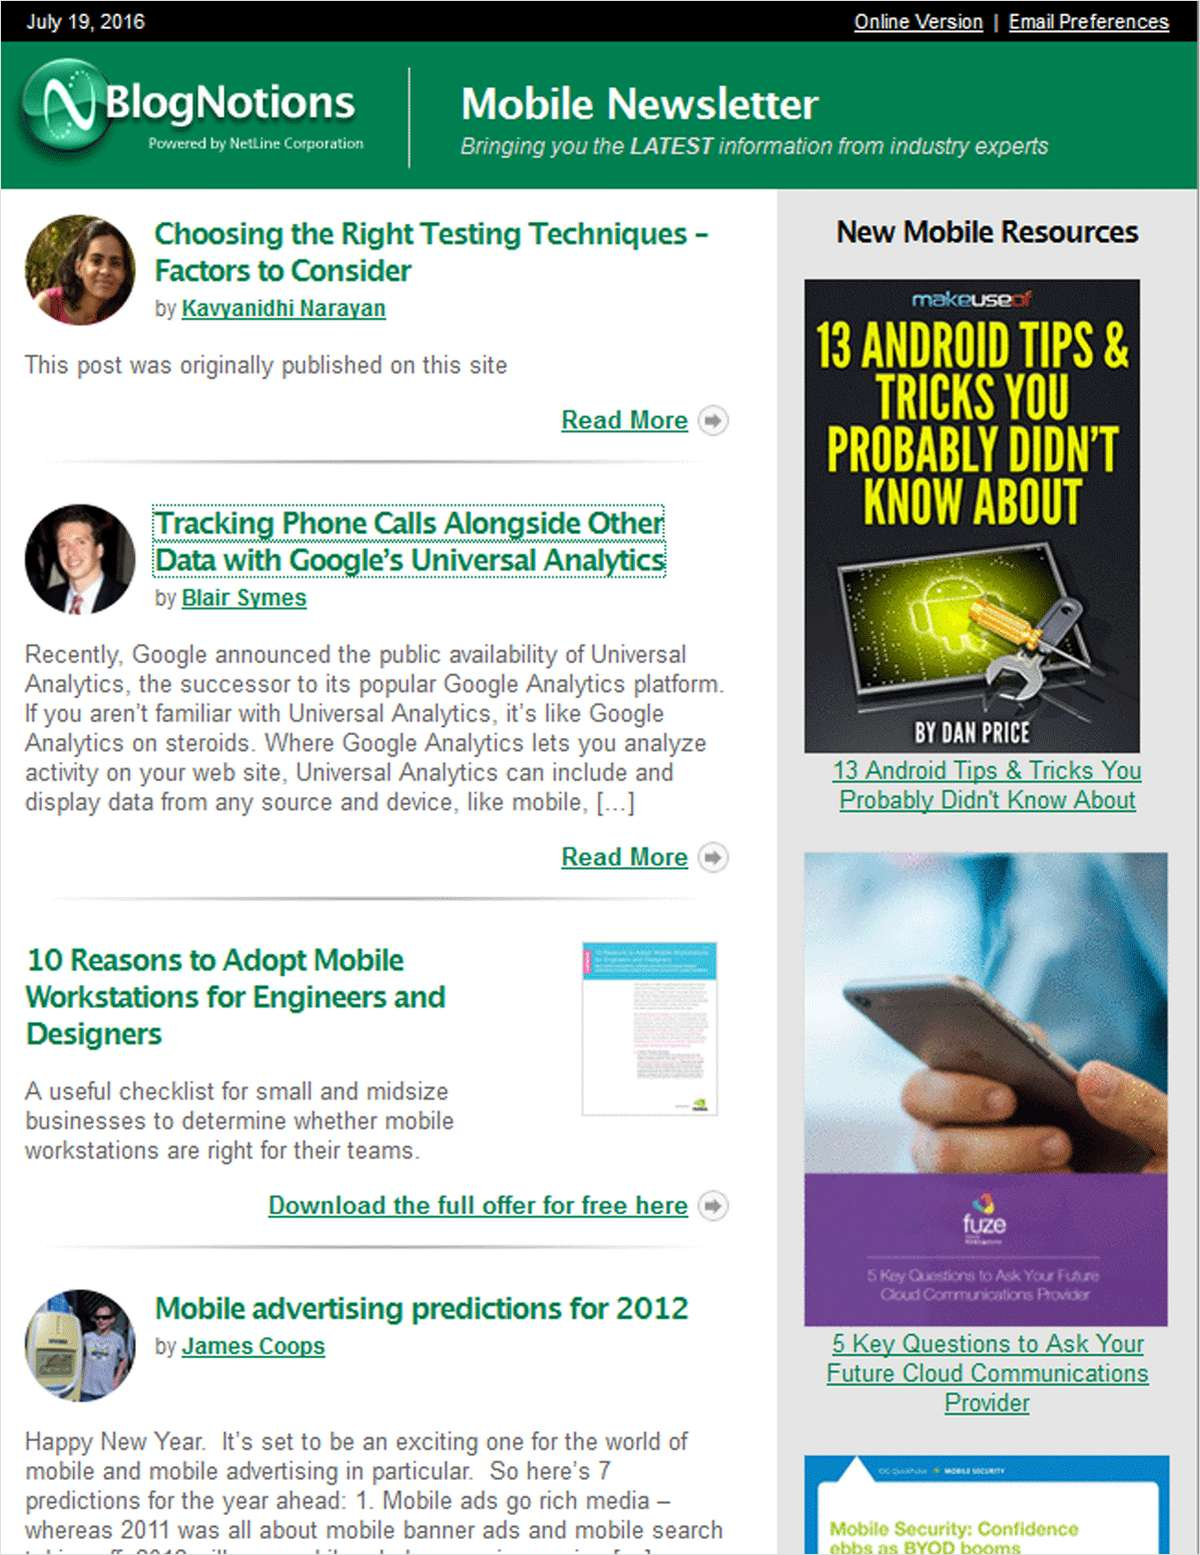 BlogNotions Mobile Newsletter: Monthly eNewsletter Featuring Blogs from Industry Experts